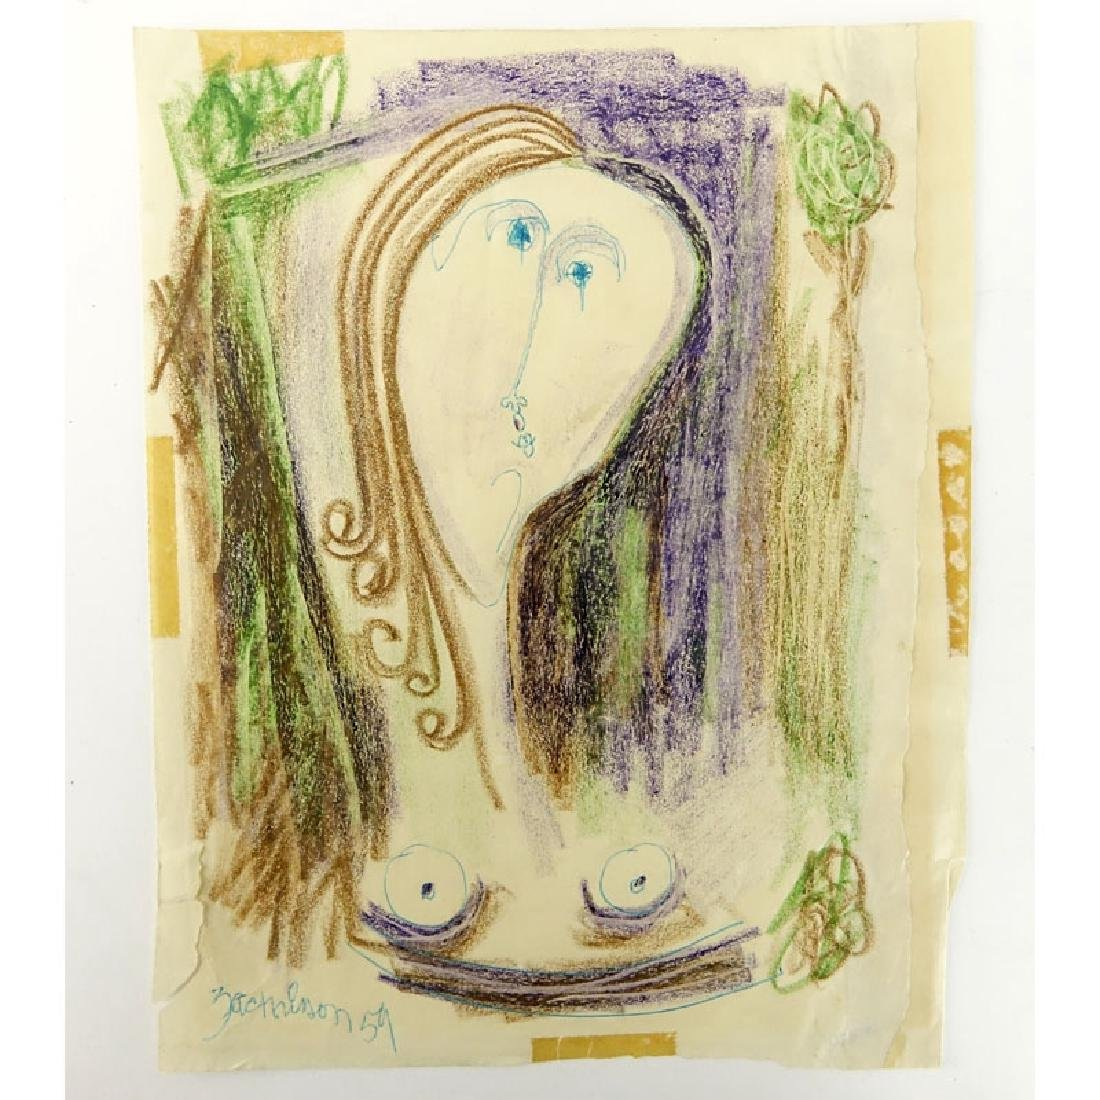 Mid-Century Crayon & Ink Drawing. Signed Zachinson '59.